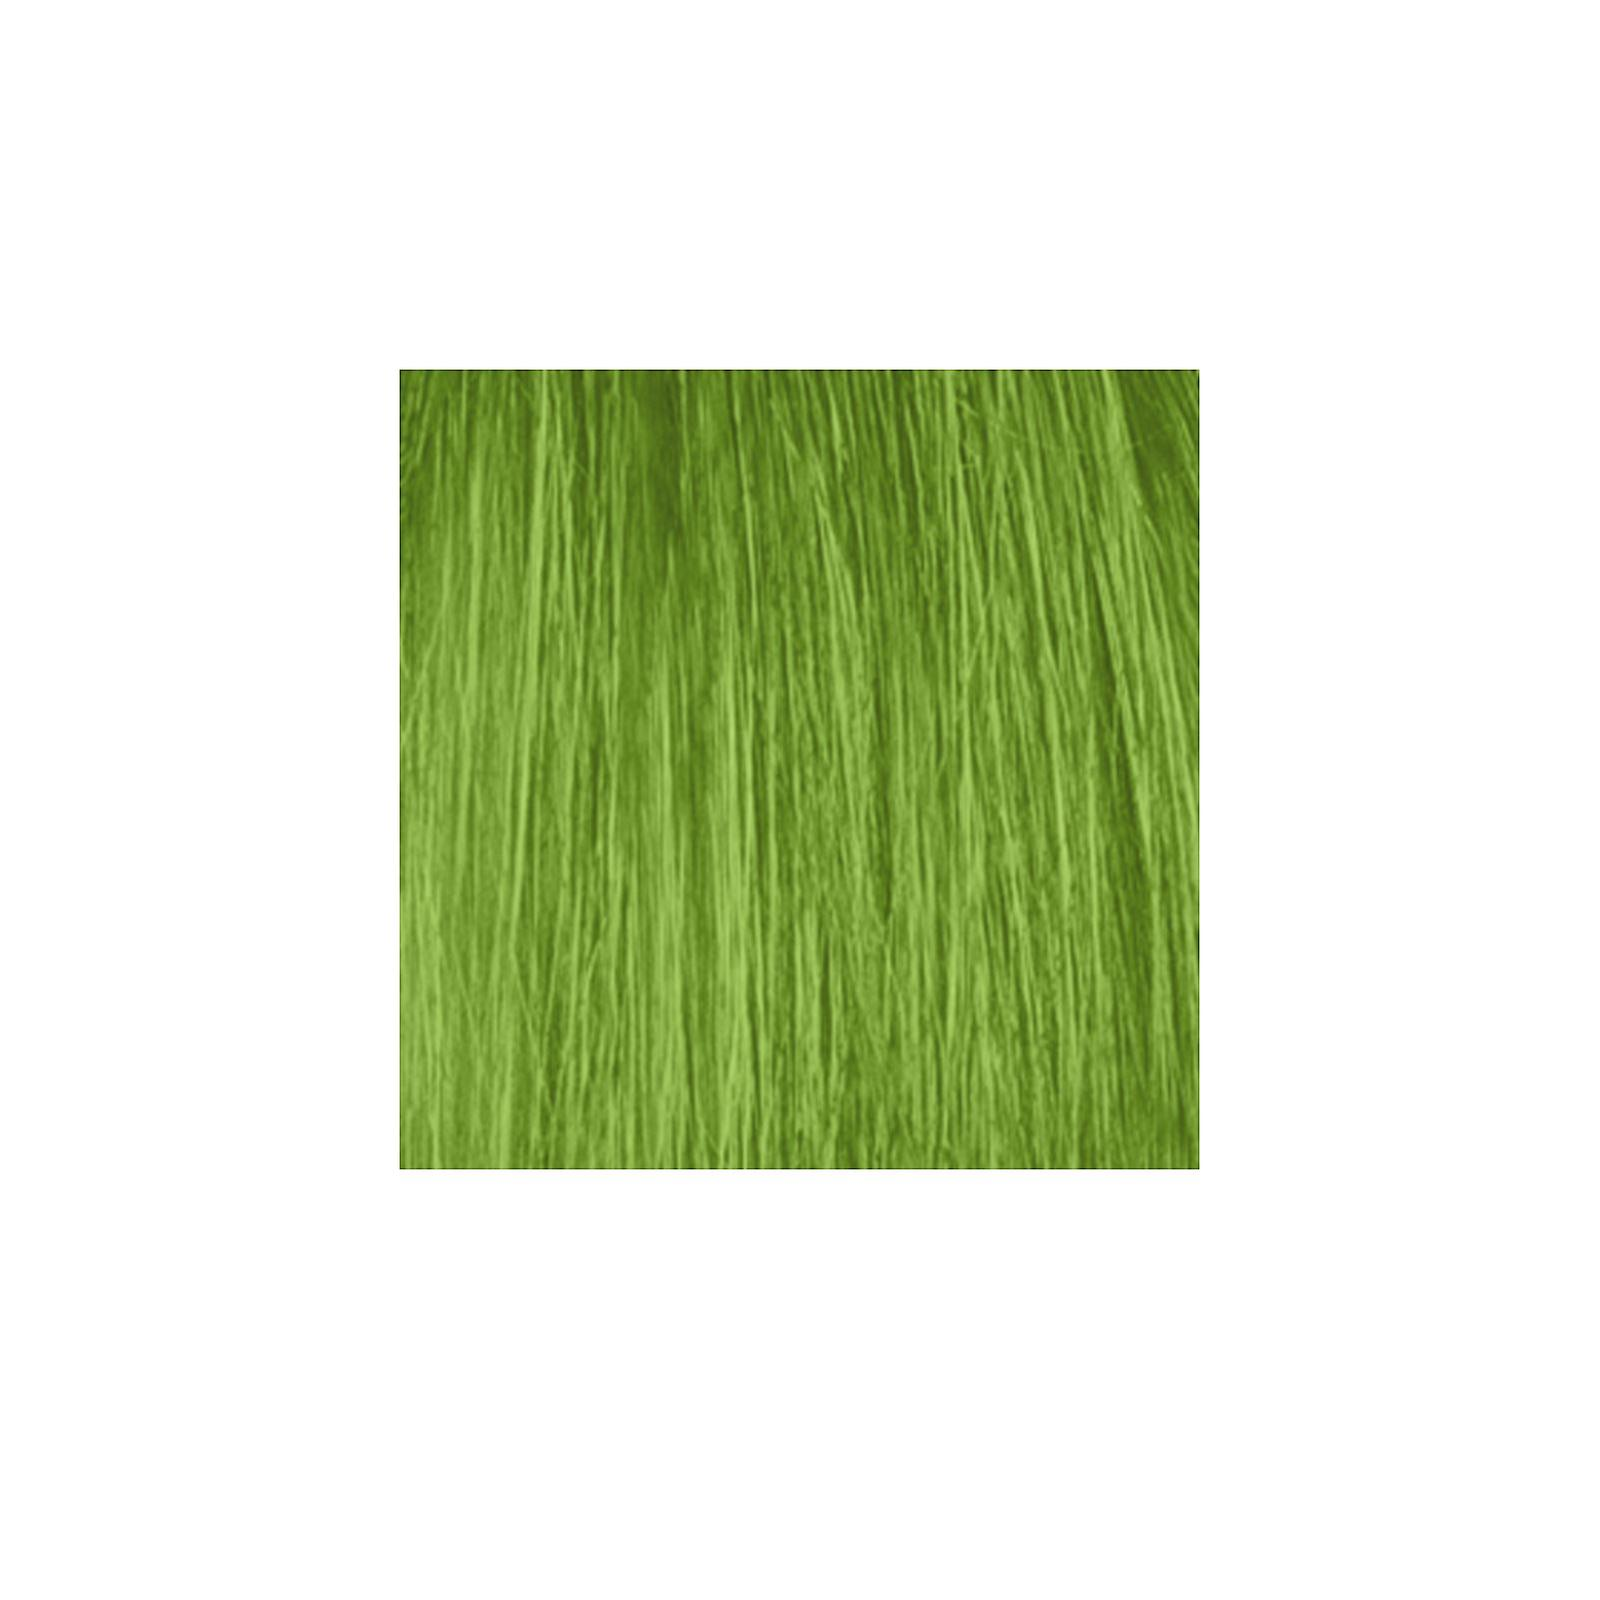 Hair Dye Semi Permanent by Stargazer - UV GREEN With Free Gloves